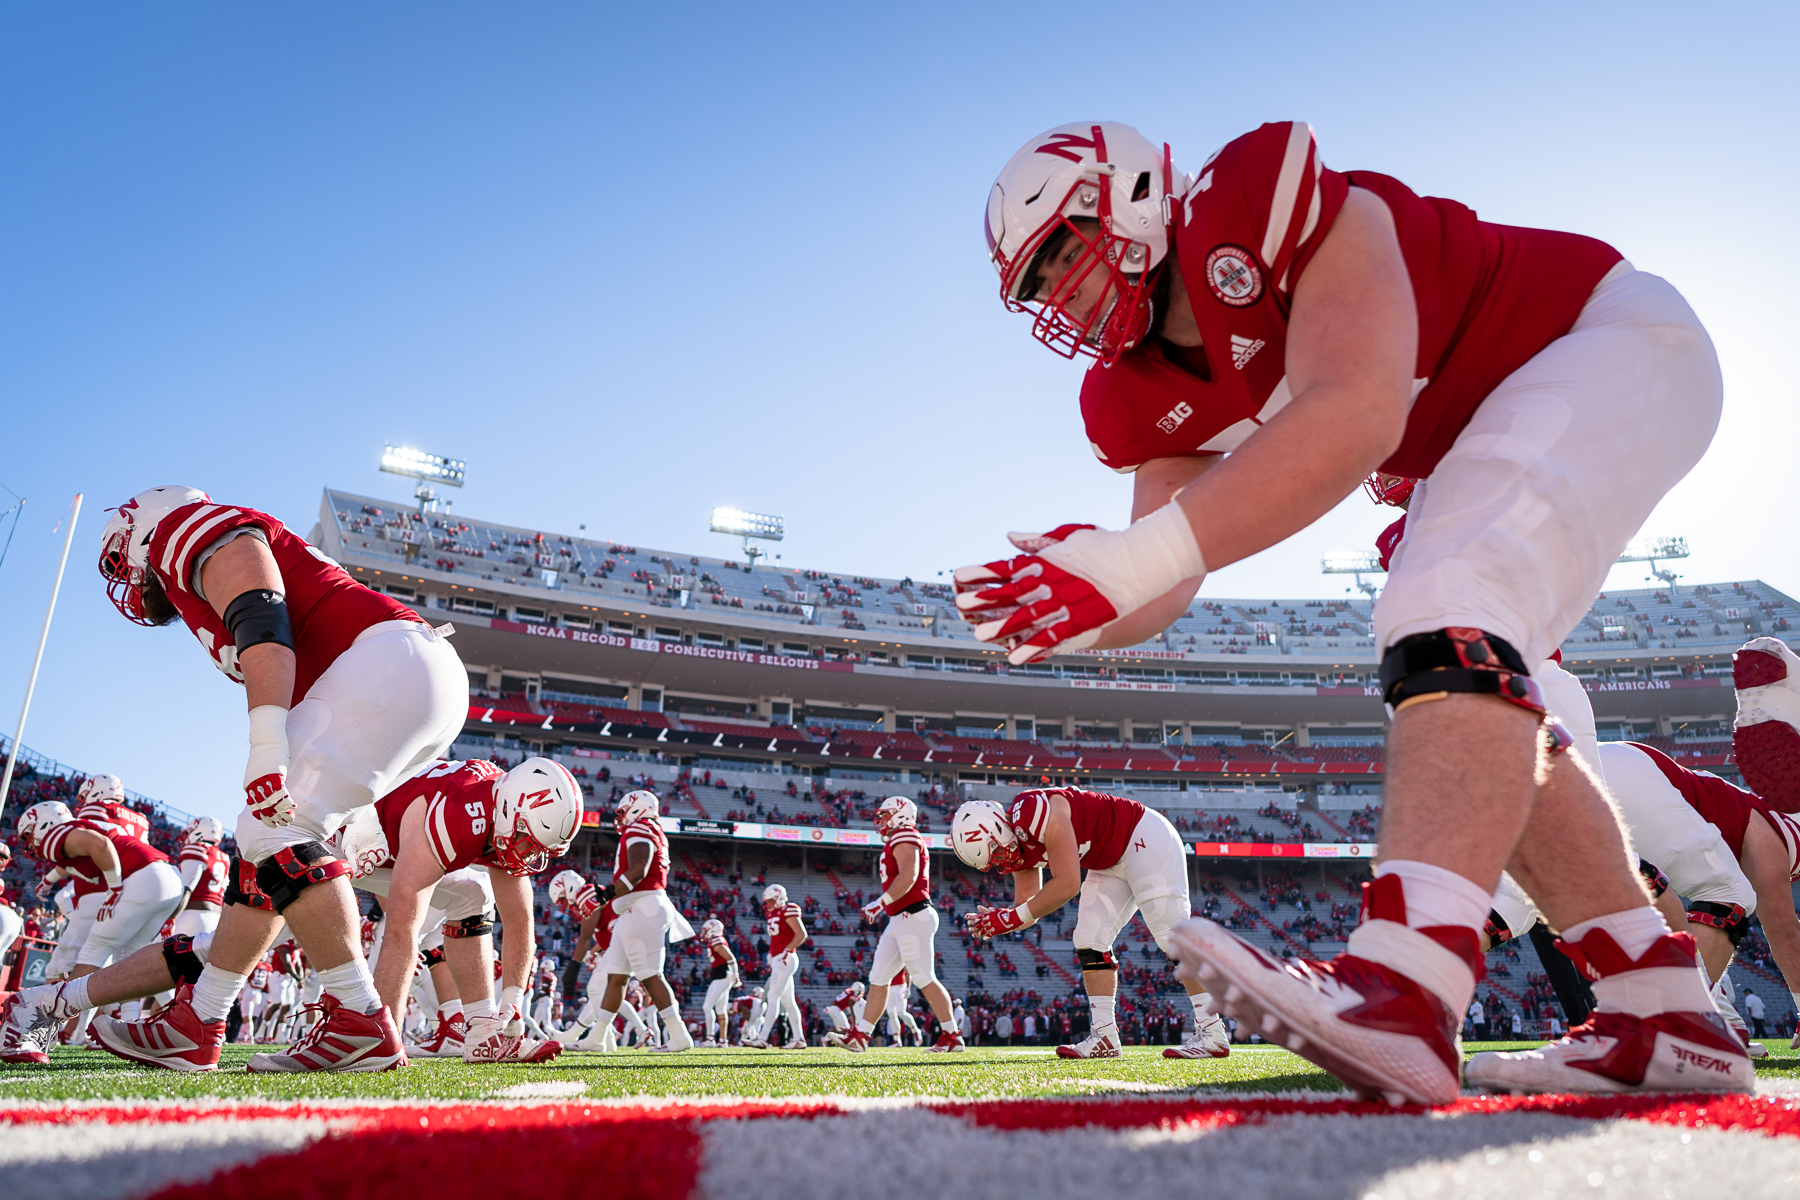 PB181026_FB_Nebr_vs_BCU_03758, paul bellinger boise editorial photographer, Huskers 2018 fb.jpg